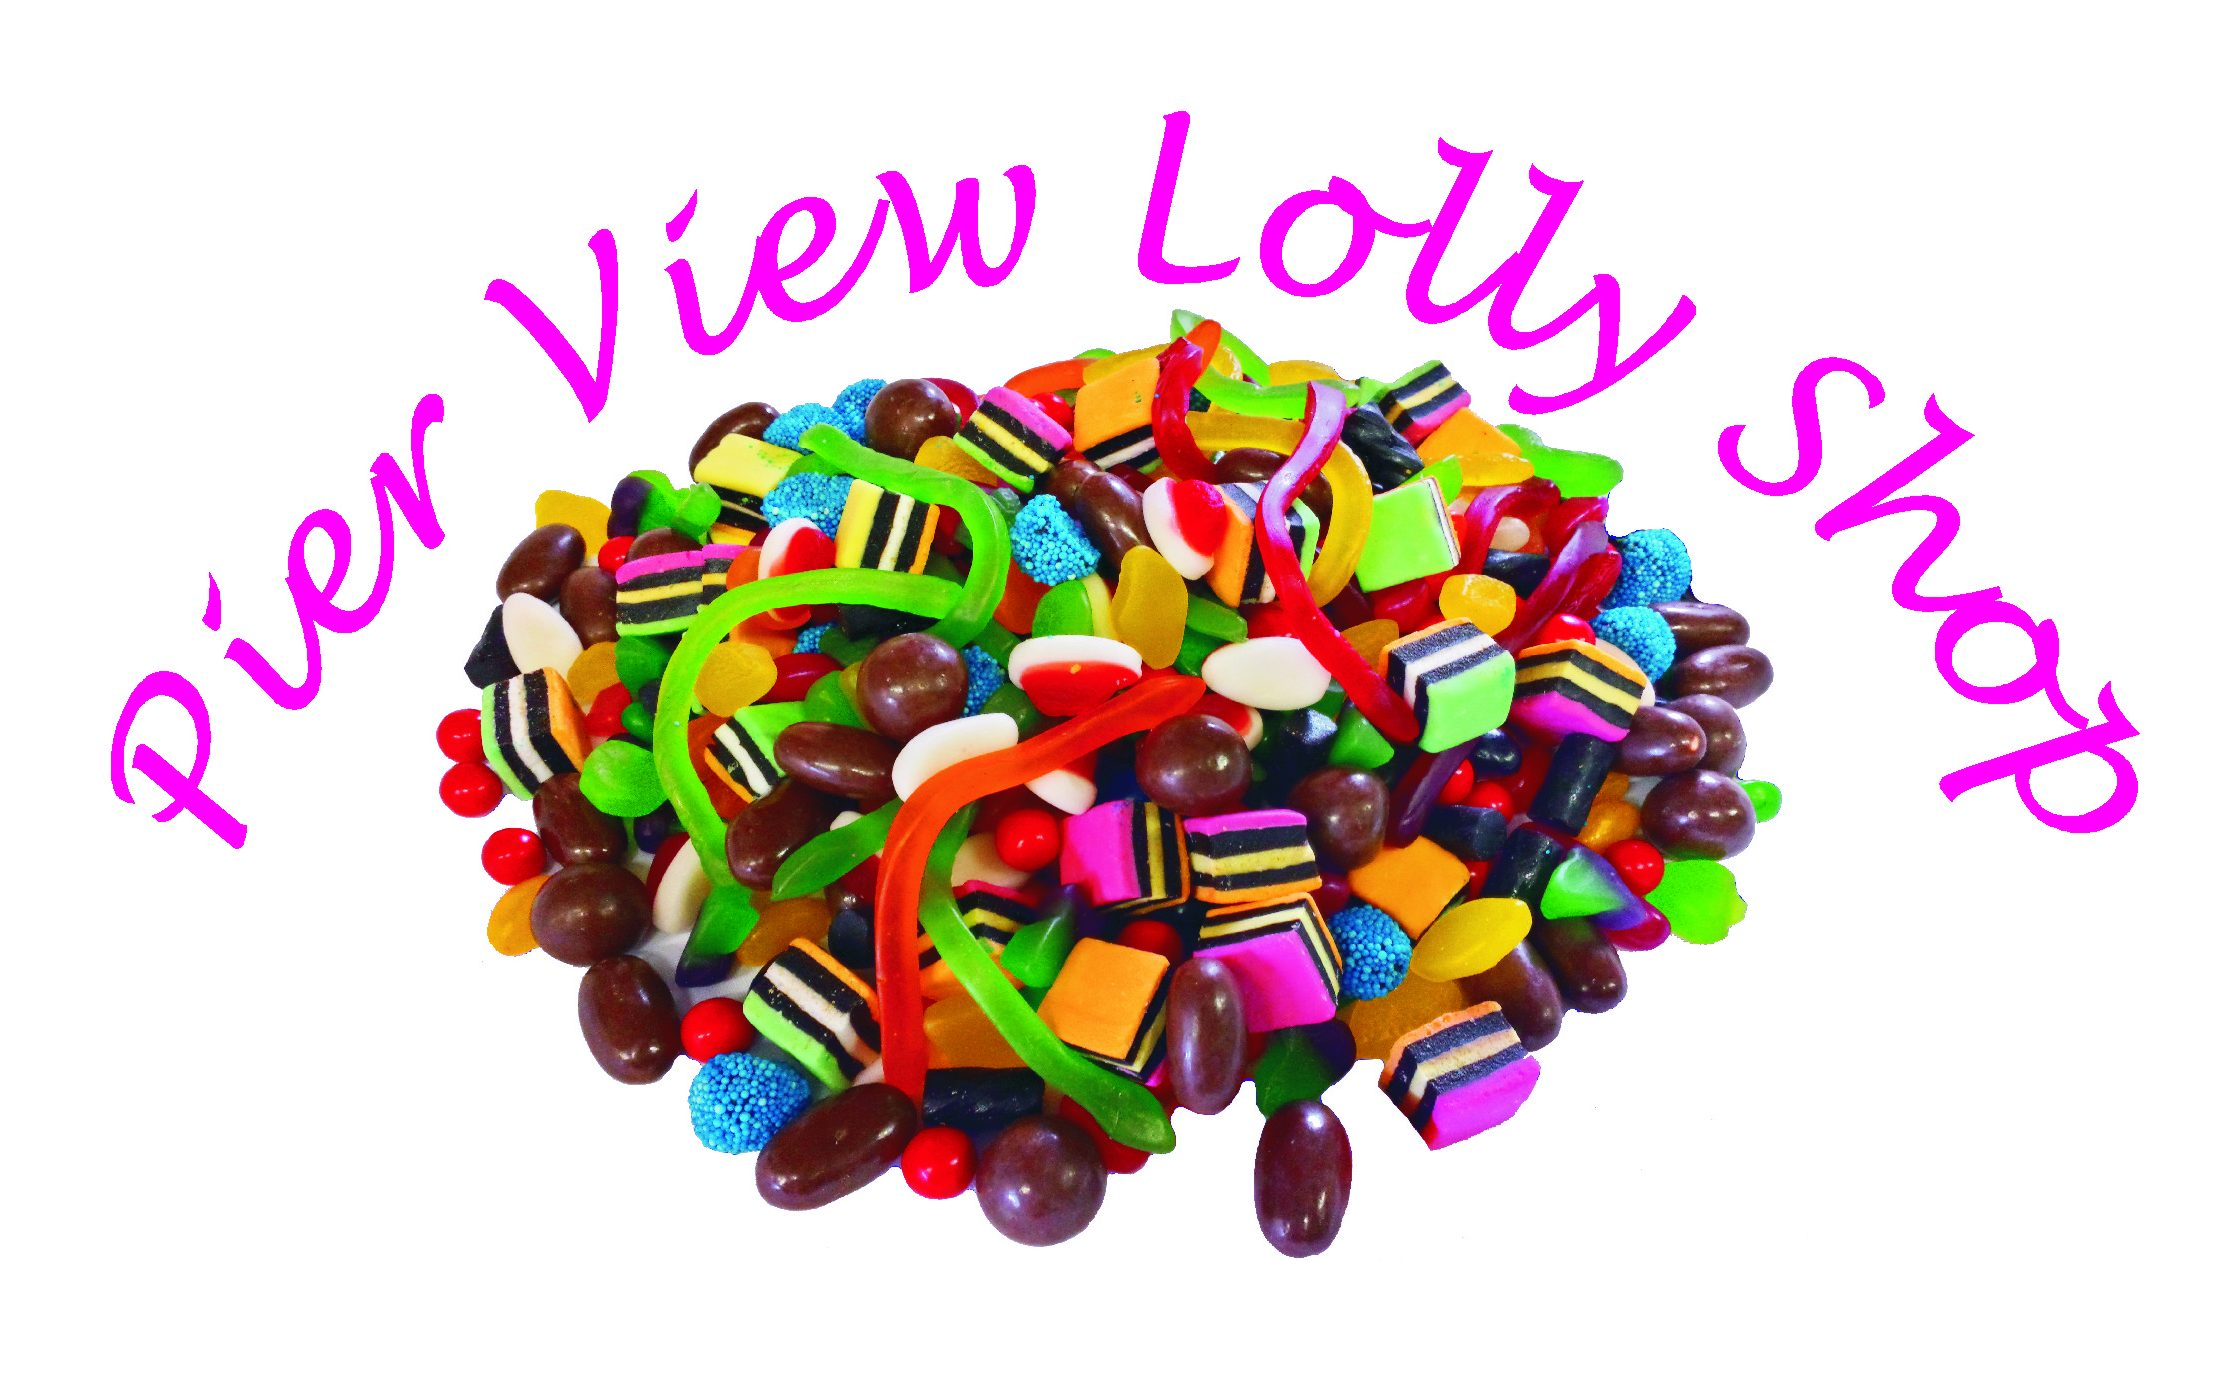 Pier View Lolly Shop